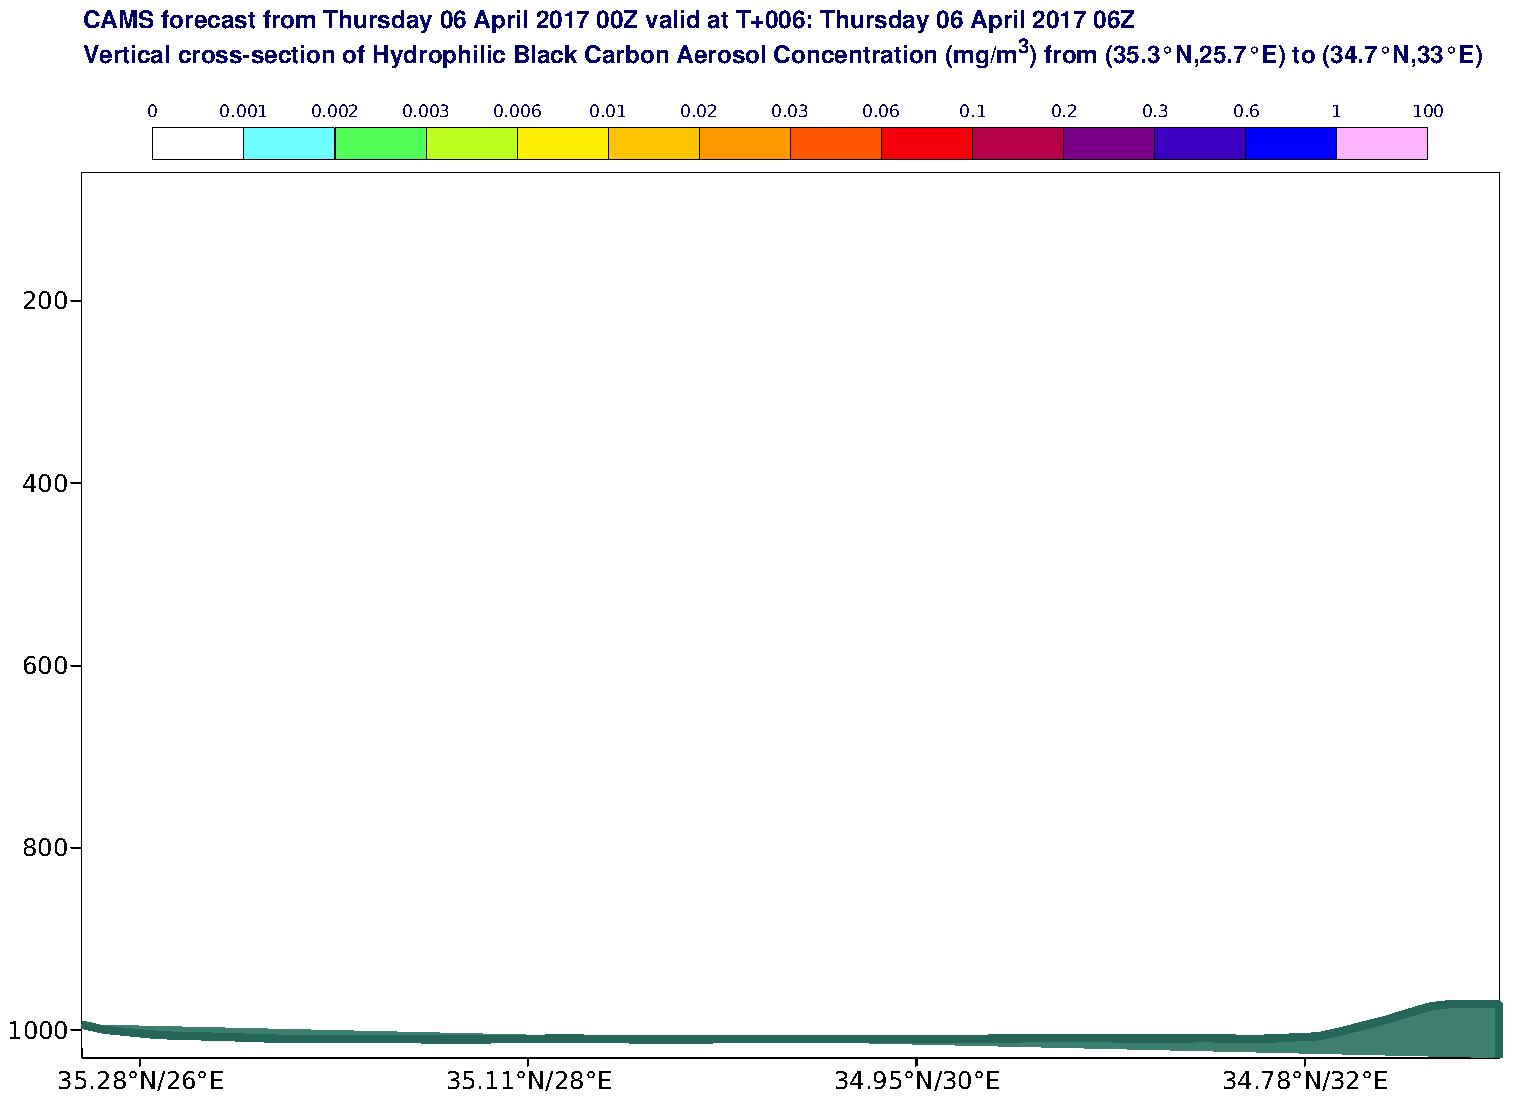 Vertical cross-section of Hydrophilic Black Carbon Aerosol Concentration (mg/m3) valid at T6 - 2017-04-06 06:00